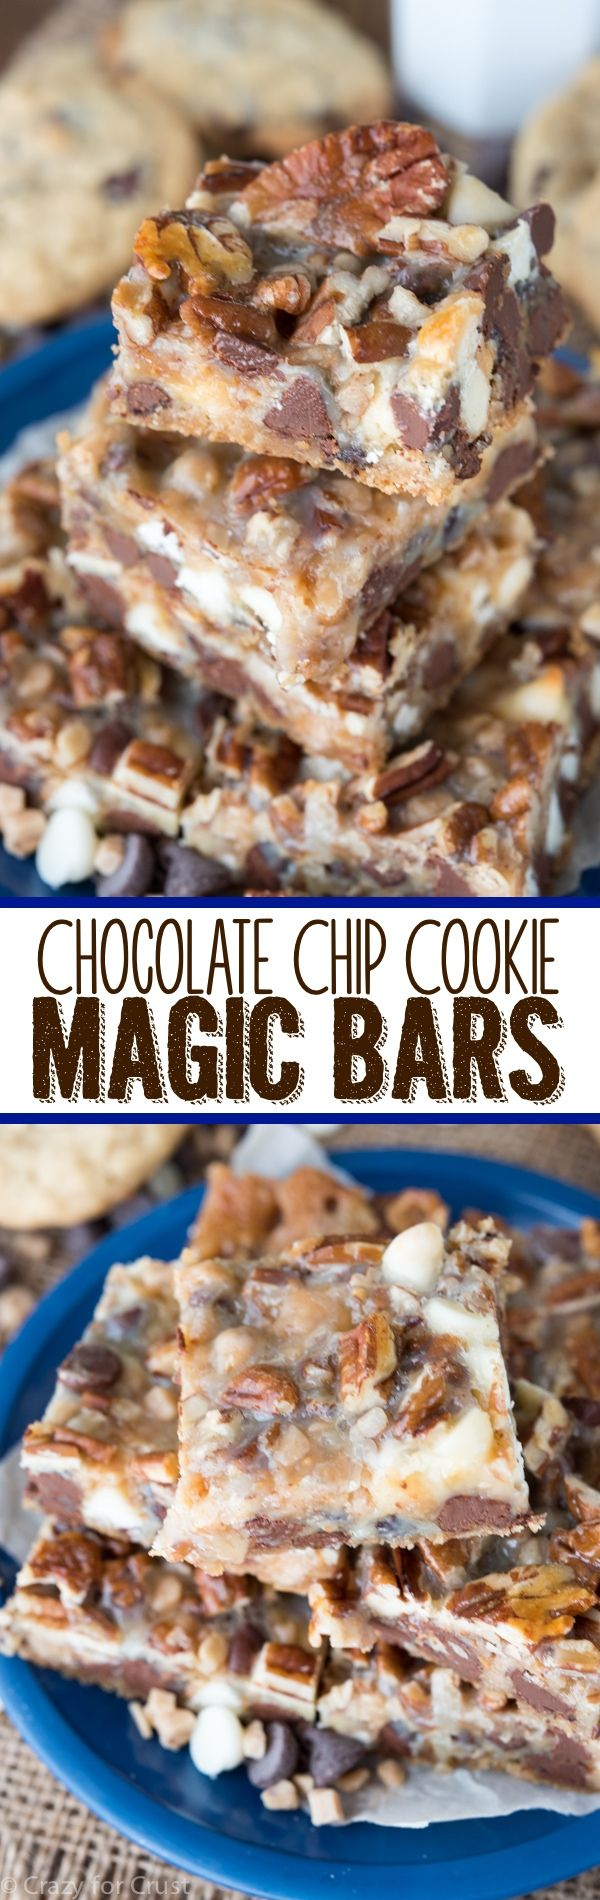 This EASY Chocolate Chip Cookie Magic Bars recipe comes together in just minutes!: